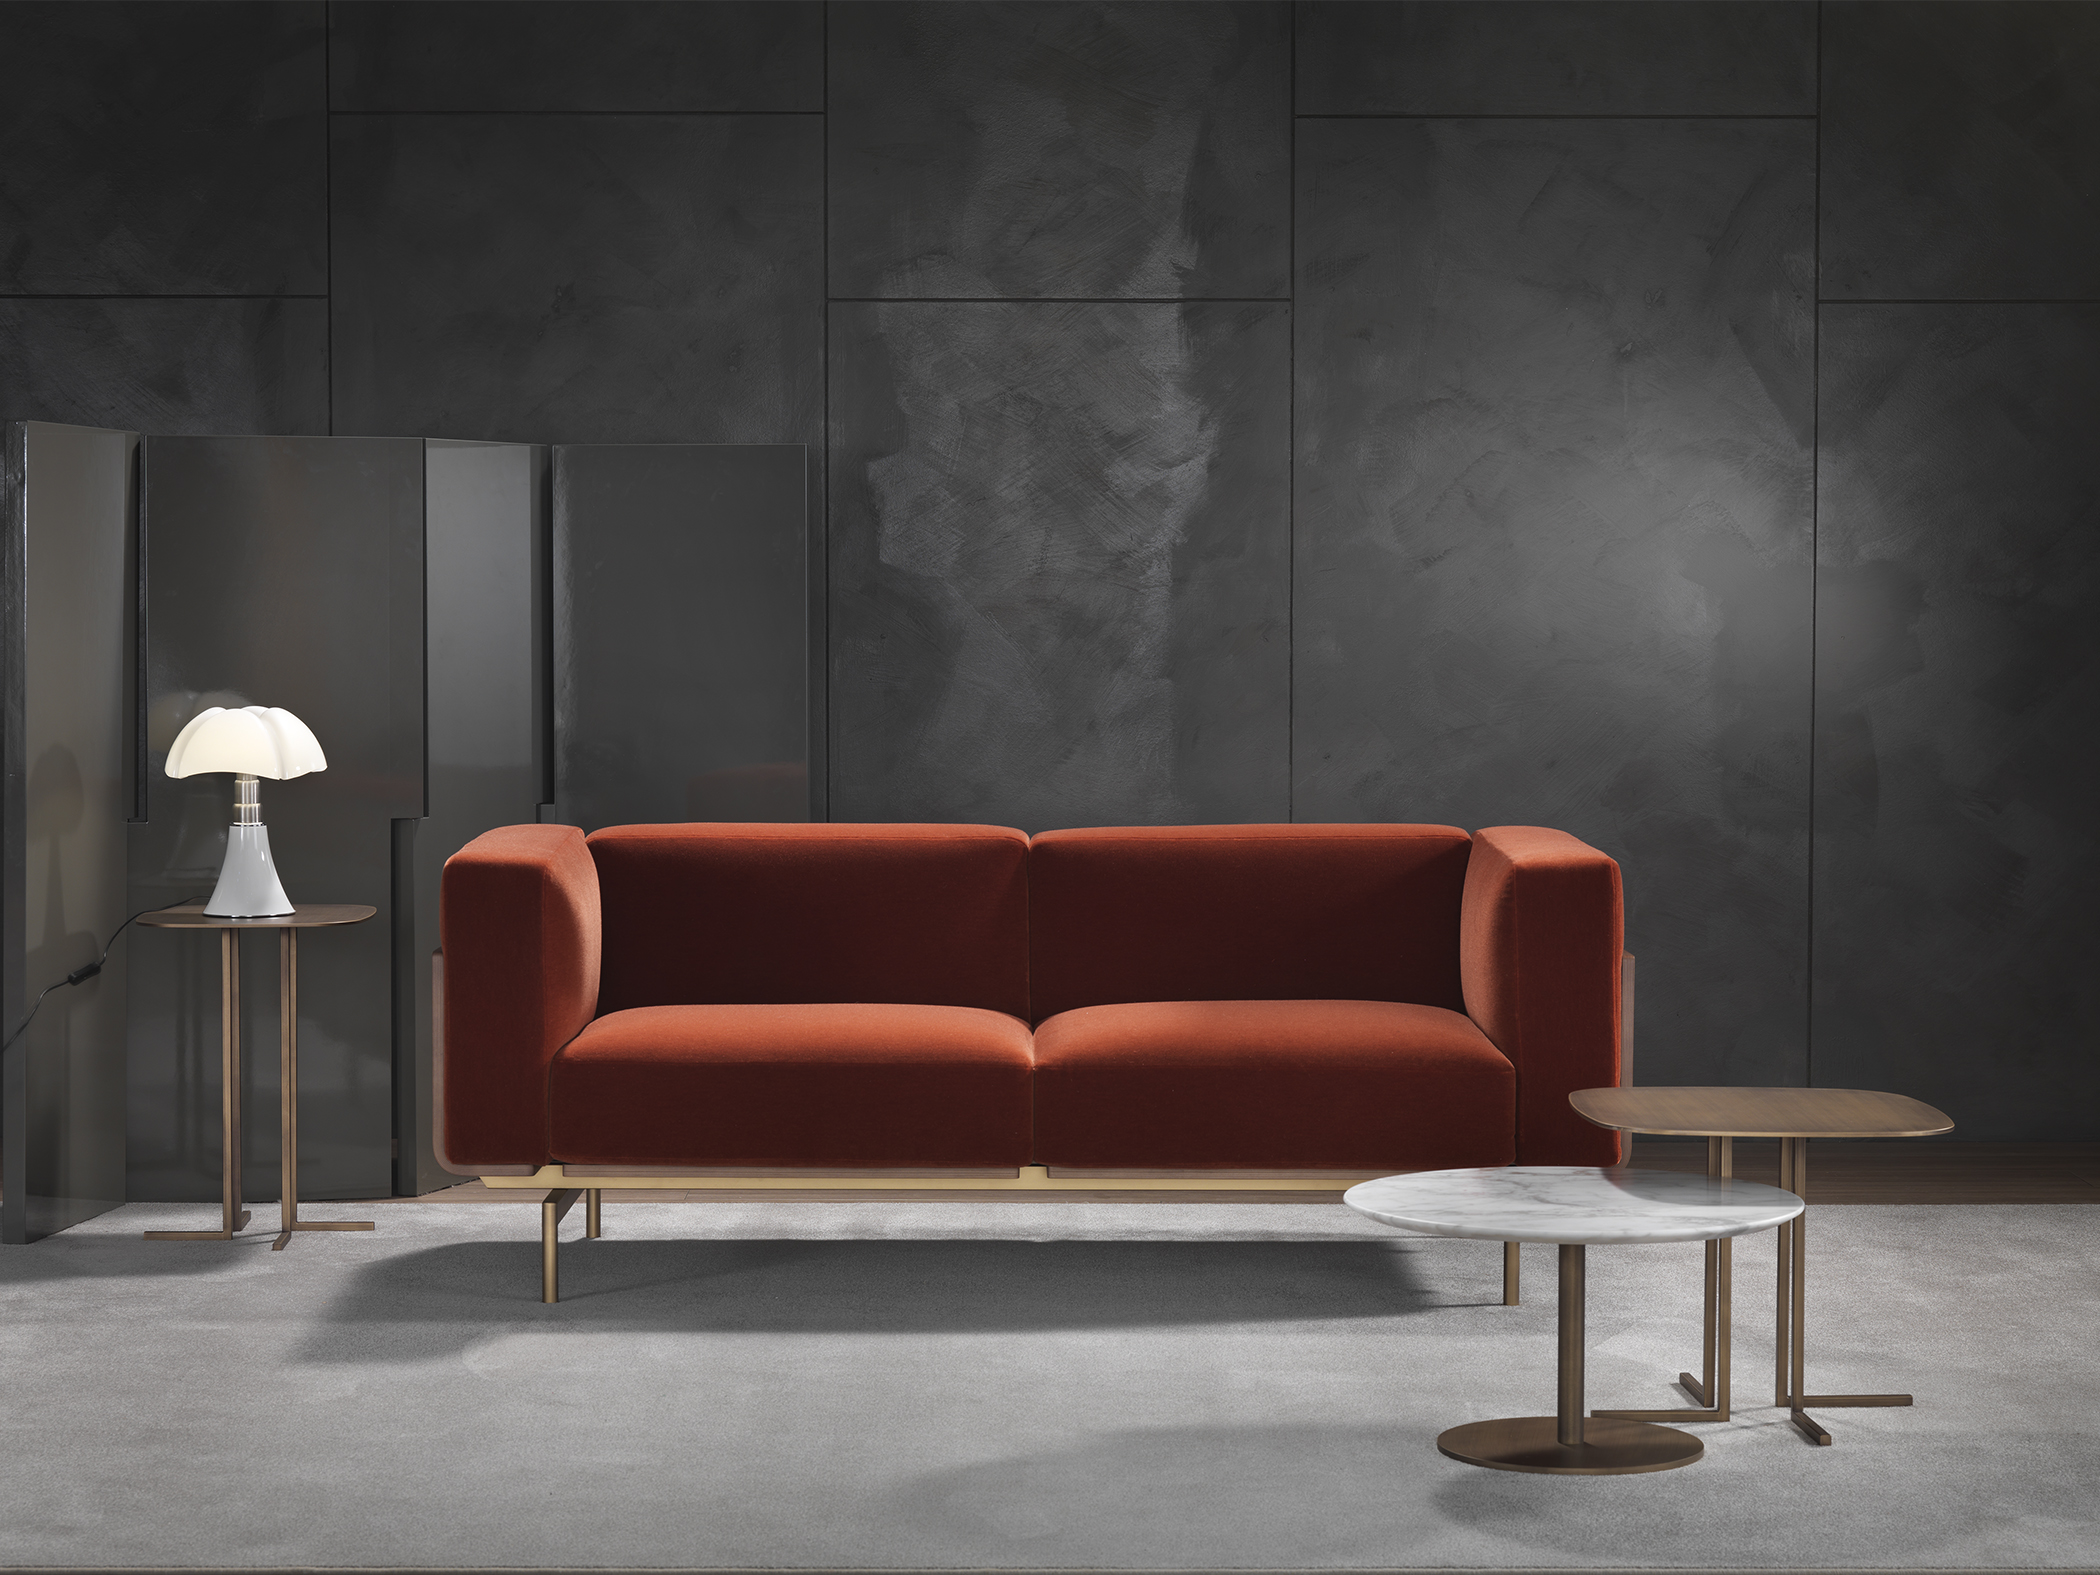 L Sofa Gallery Marelli Luxury